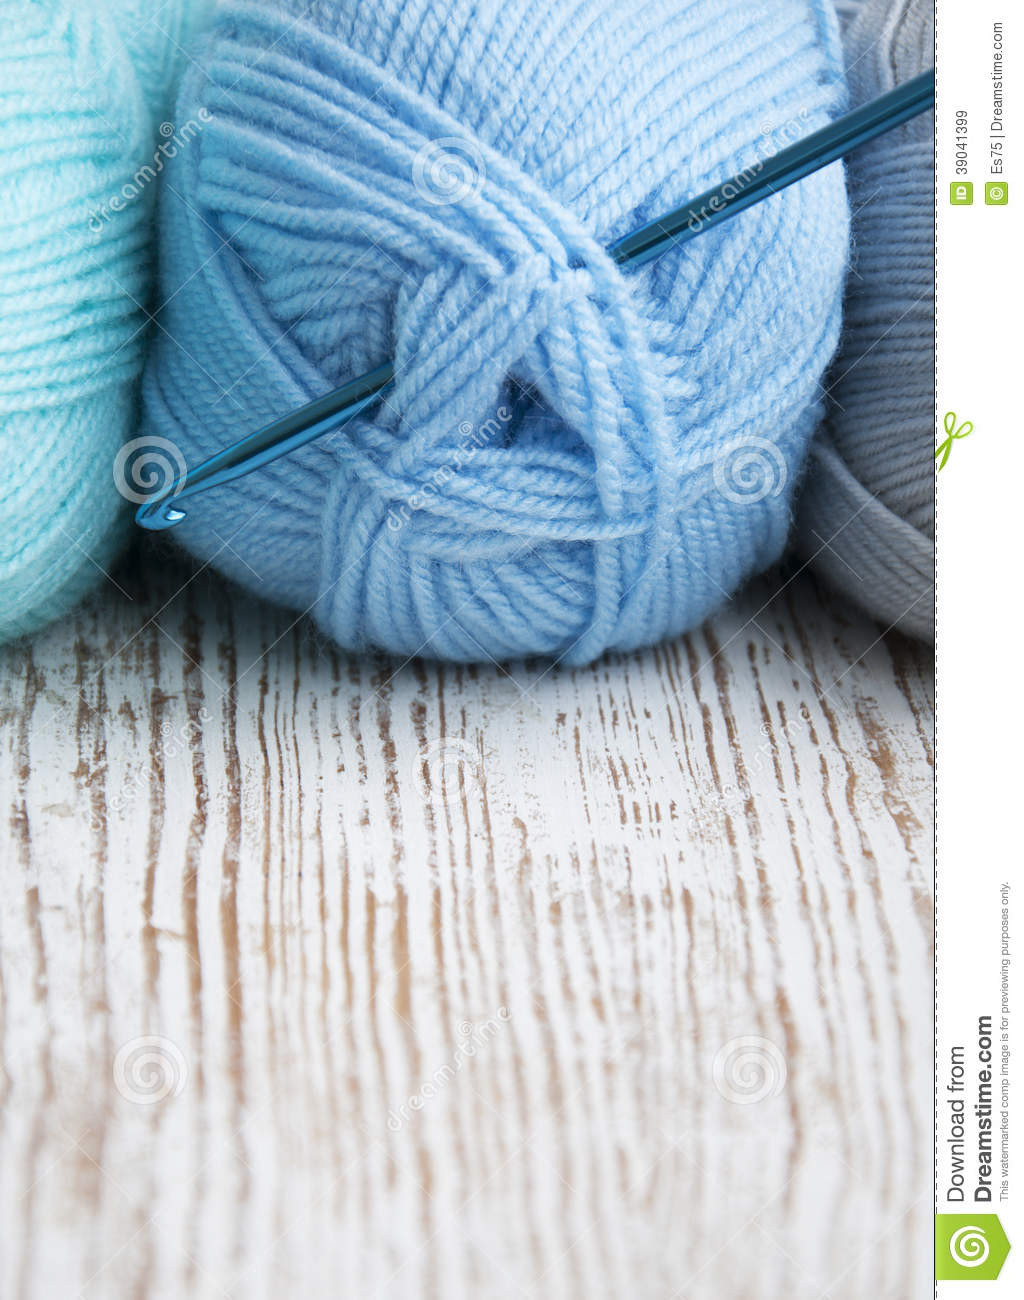 Crochet Hook and Yarn Awesome Crochet Knitting Yarn Wmperm for Of Superb 44 Images Crochet Hook and Yarn